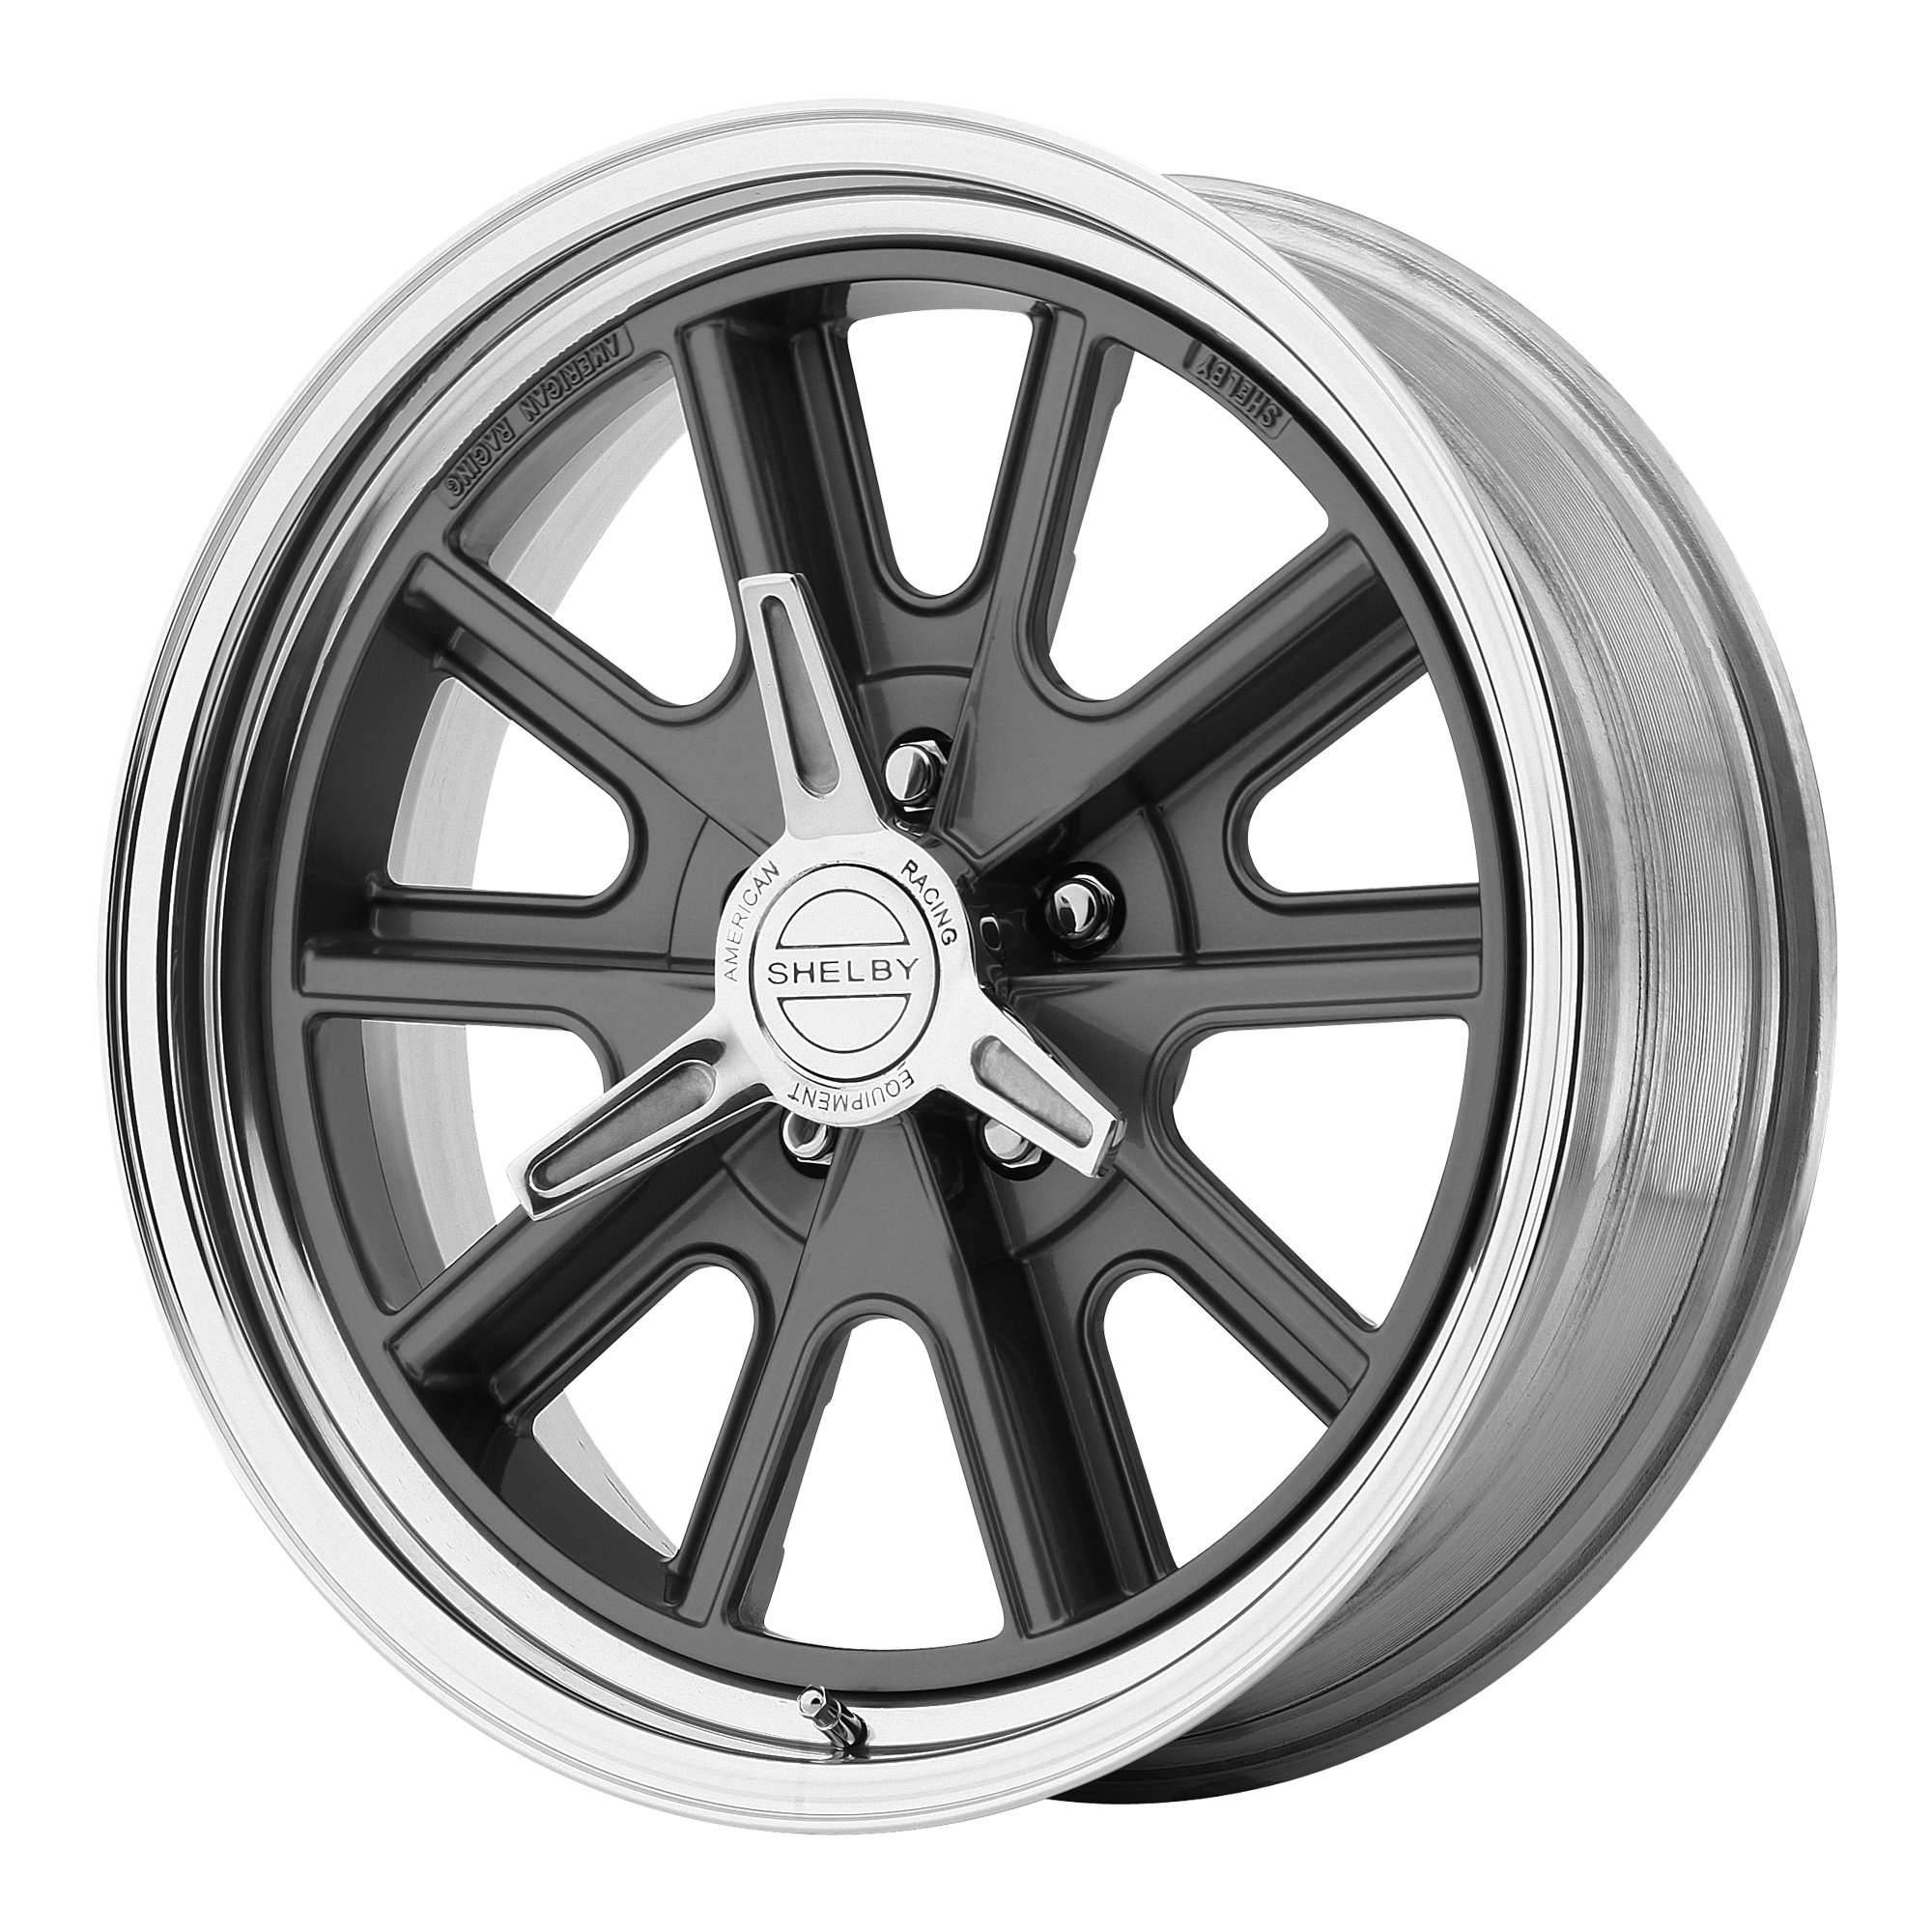 American Racing Wheels VN427 SHELBY COBRA Gray